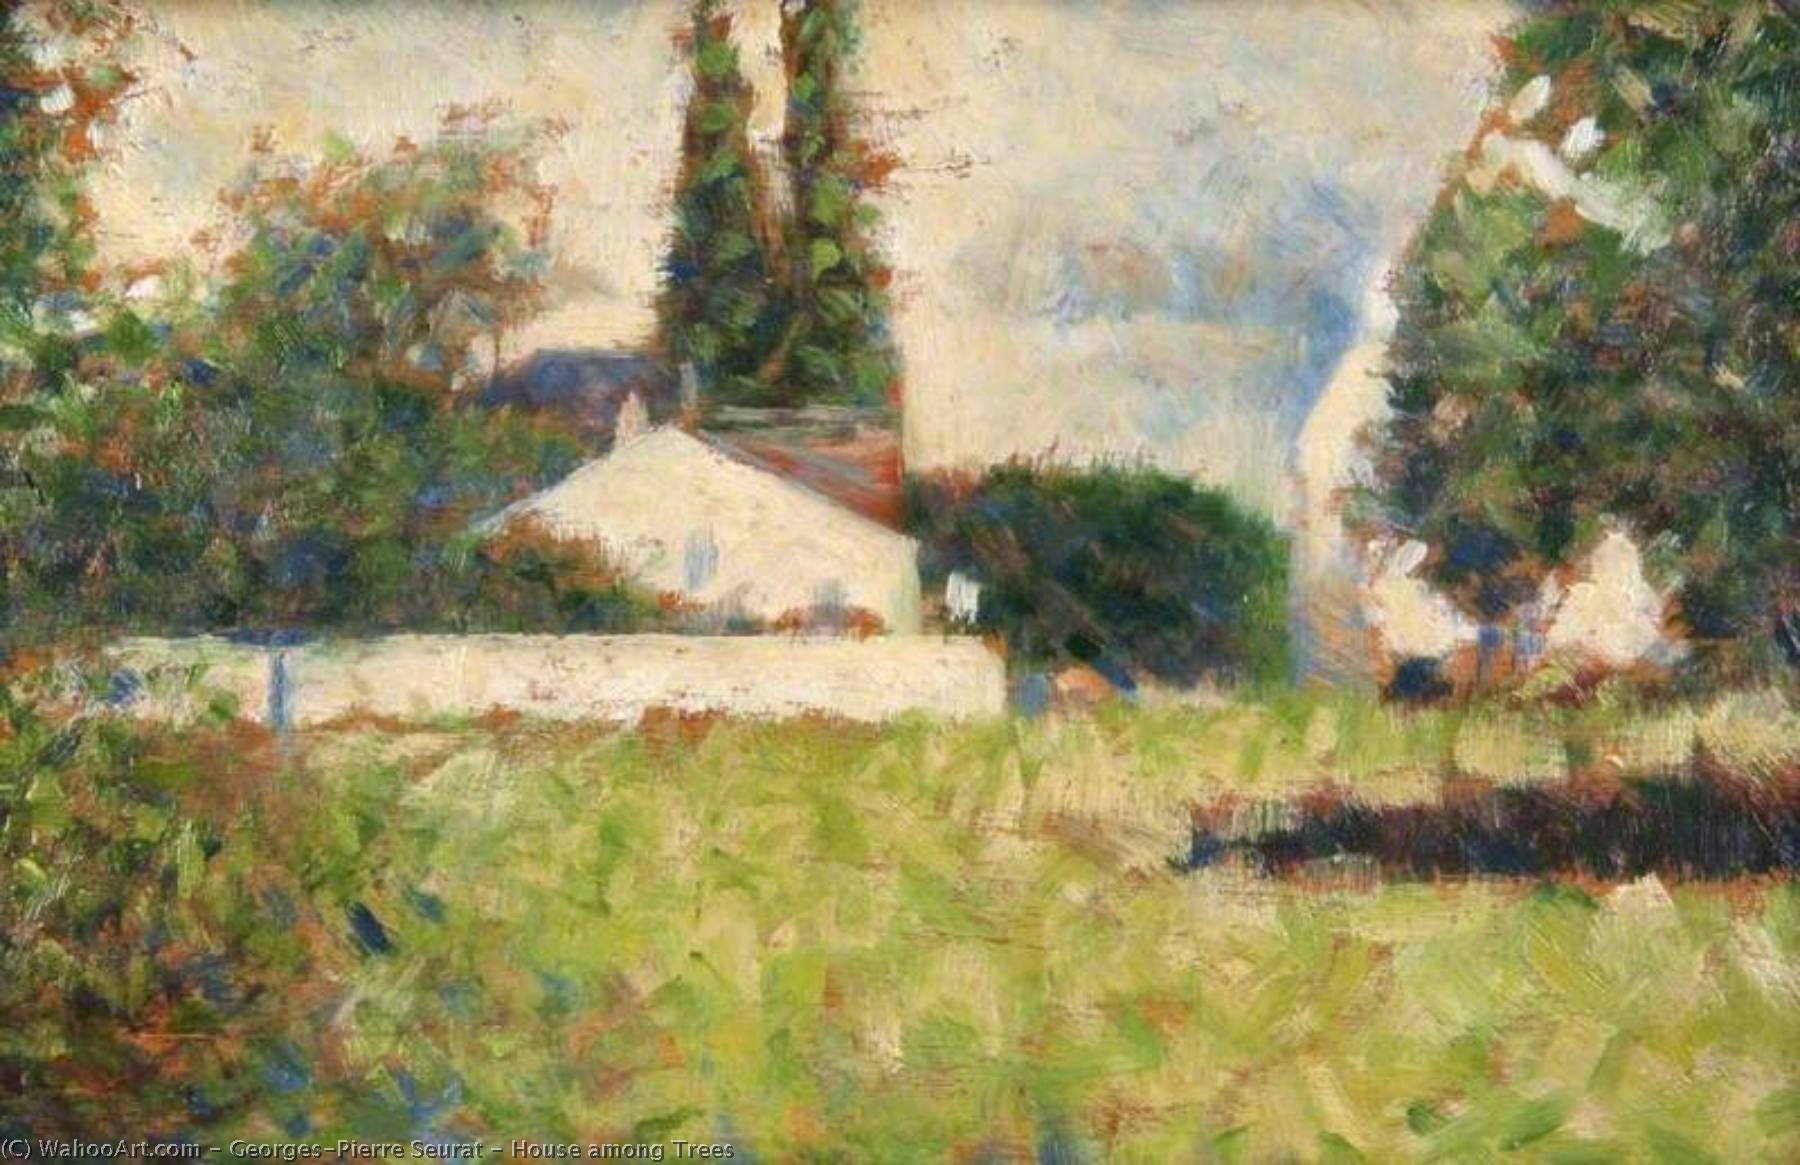 Wikioo.org - The Encyclopedia of Fine Arts - Painting, Artwork by Georges Pierre Seurat - House among Trees